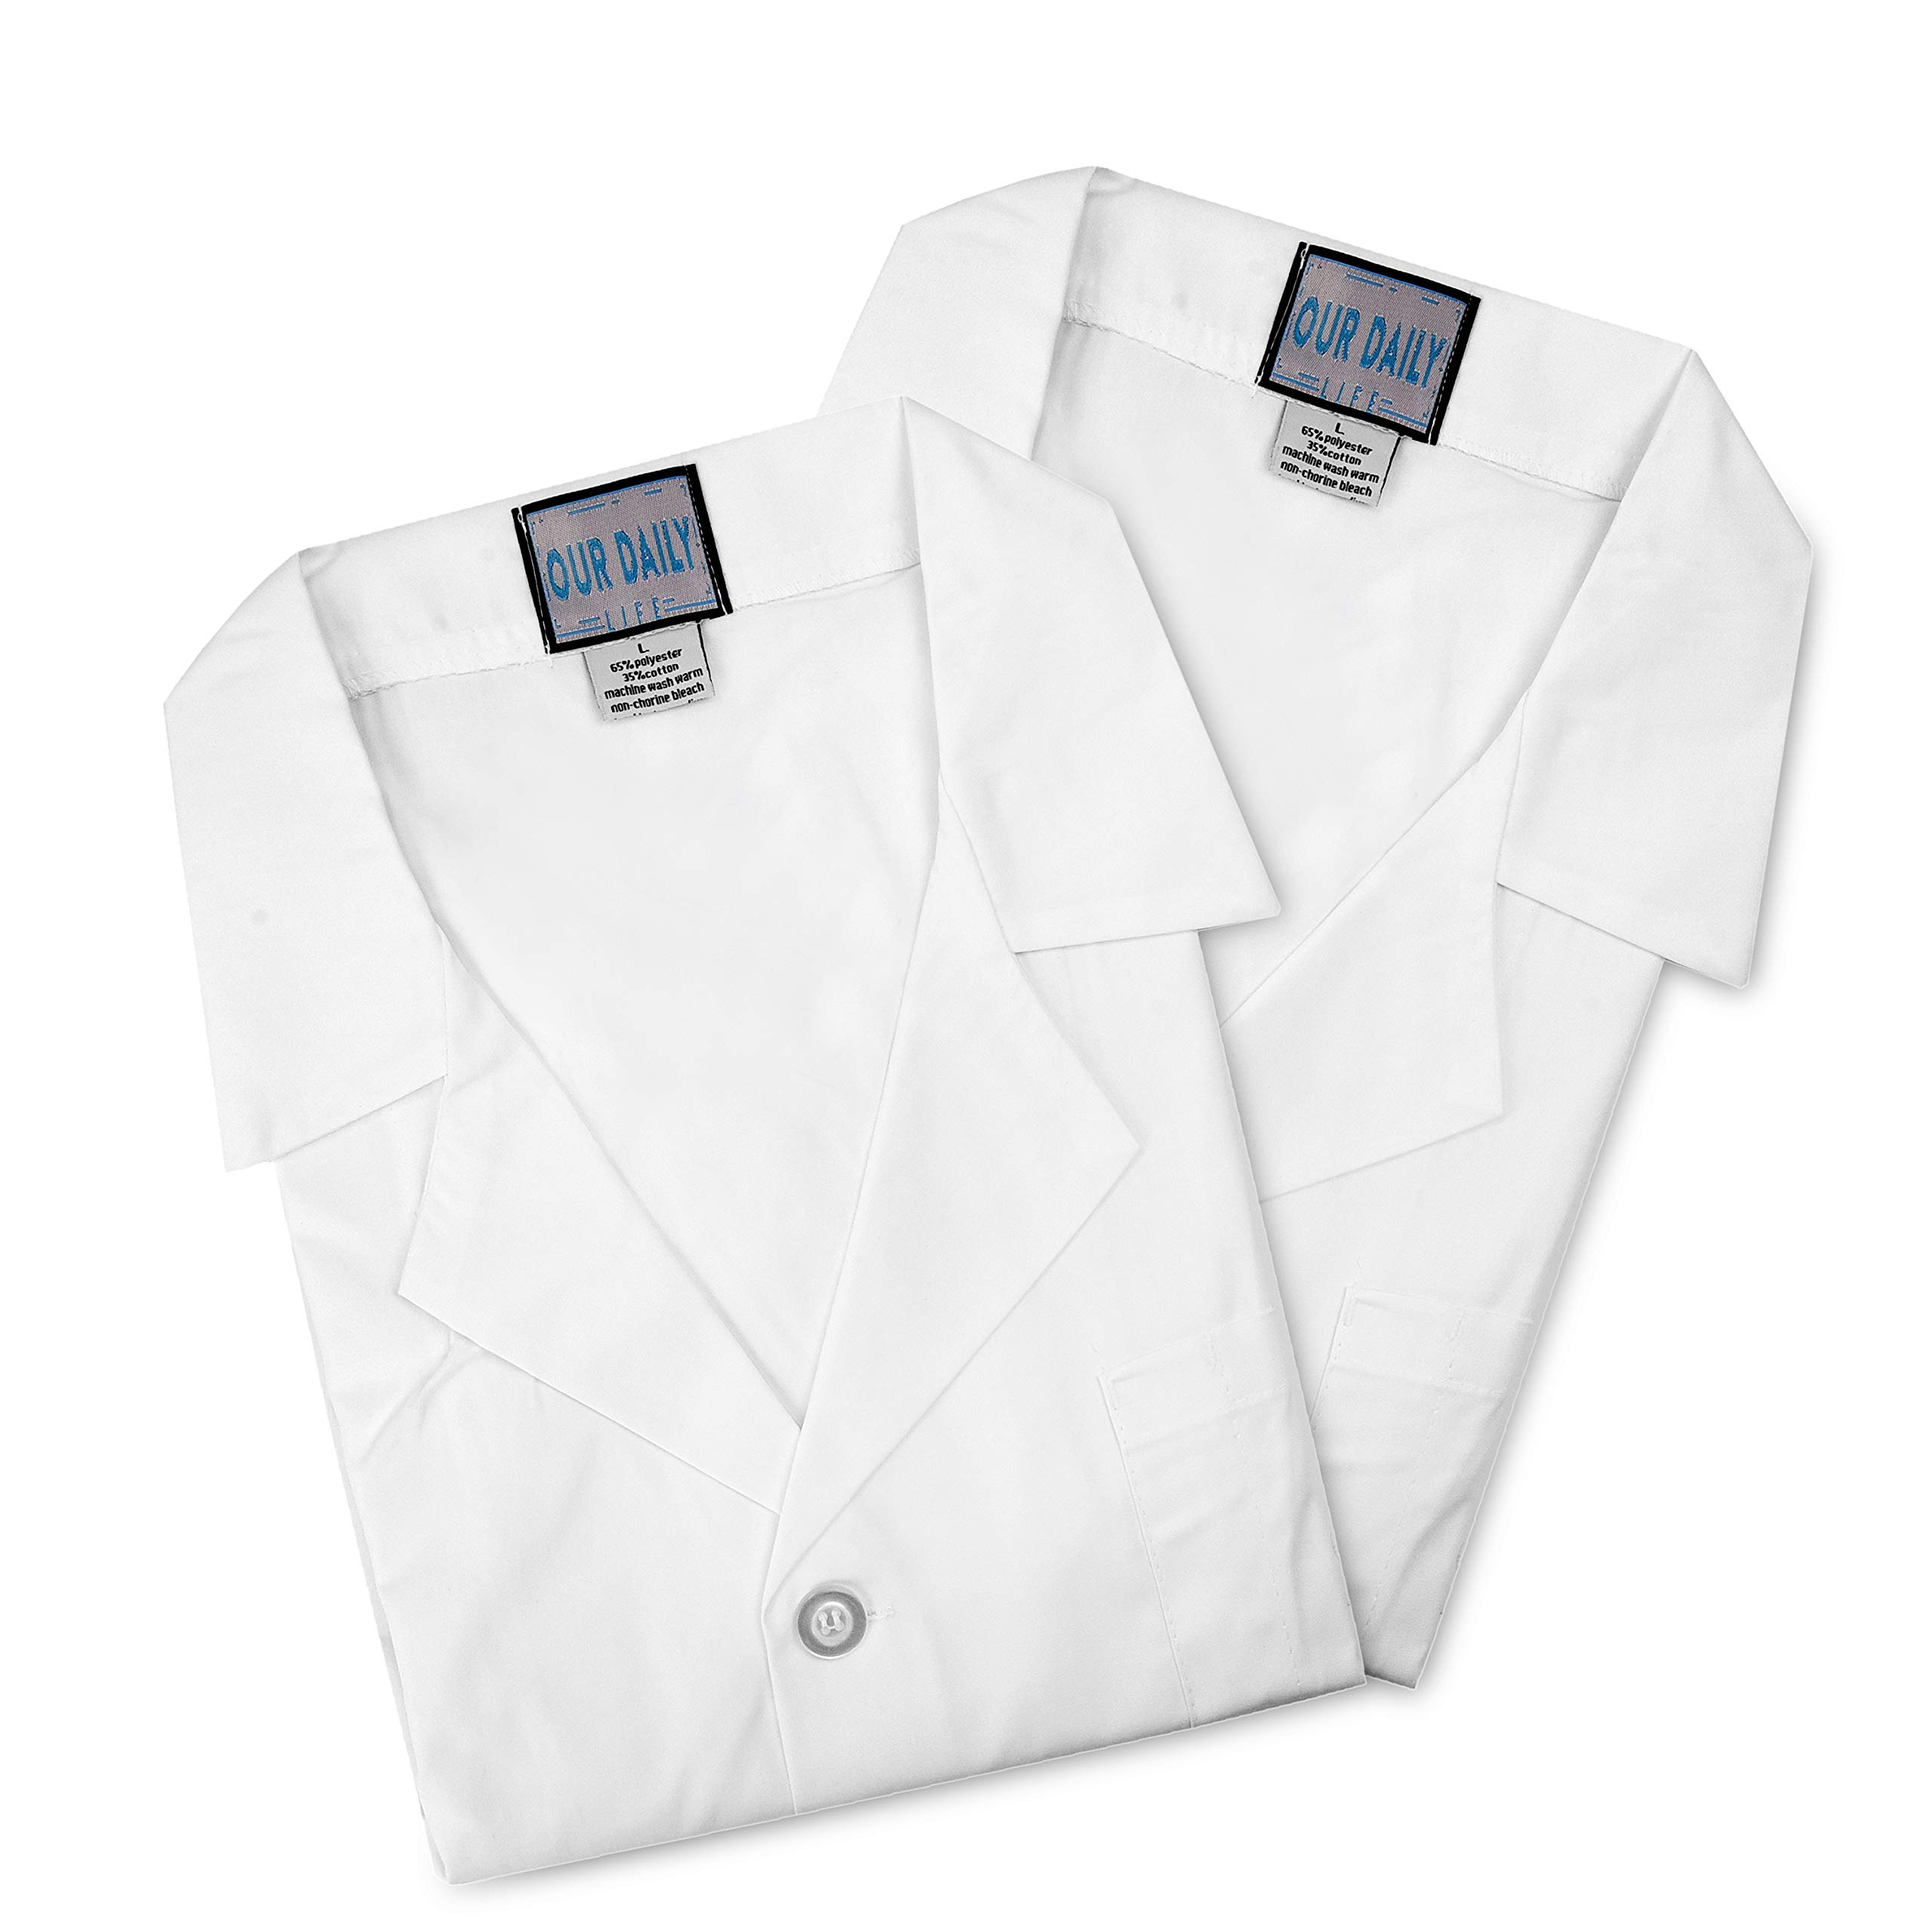 "Set of 2 White Unisex Lab Coats. Three Outside Pockets and an Inner Pocket. Length 41"" (Large)"